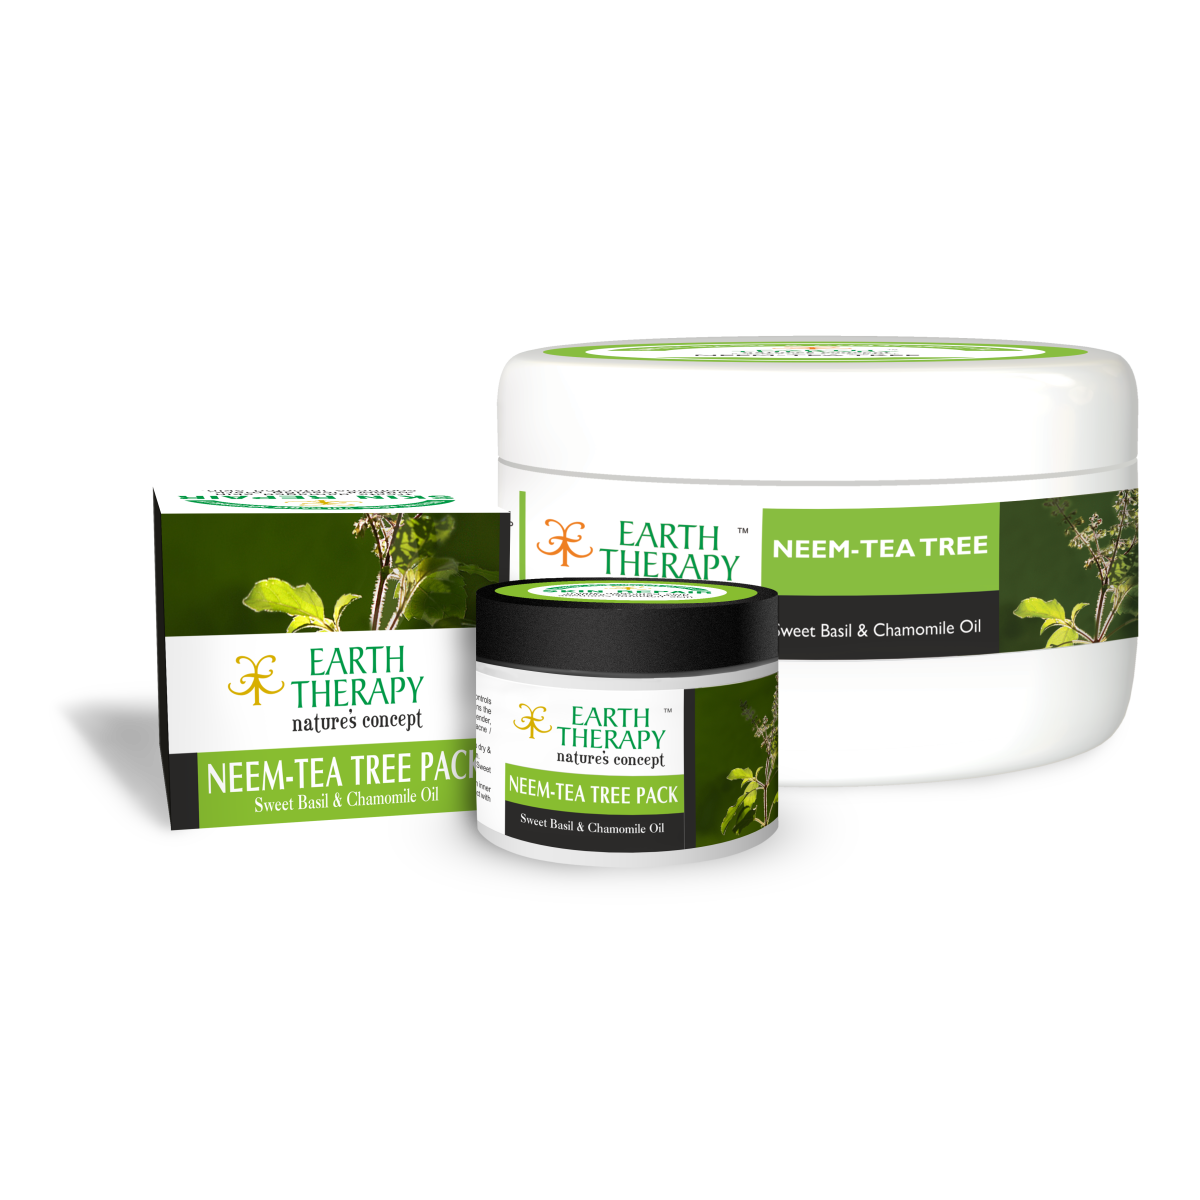 Neem Tea Tree Pack Earth Therapy Acnes Oil Clay Mask 50g 75g 500g